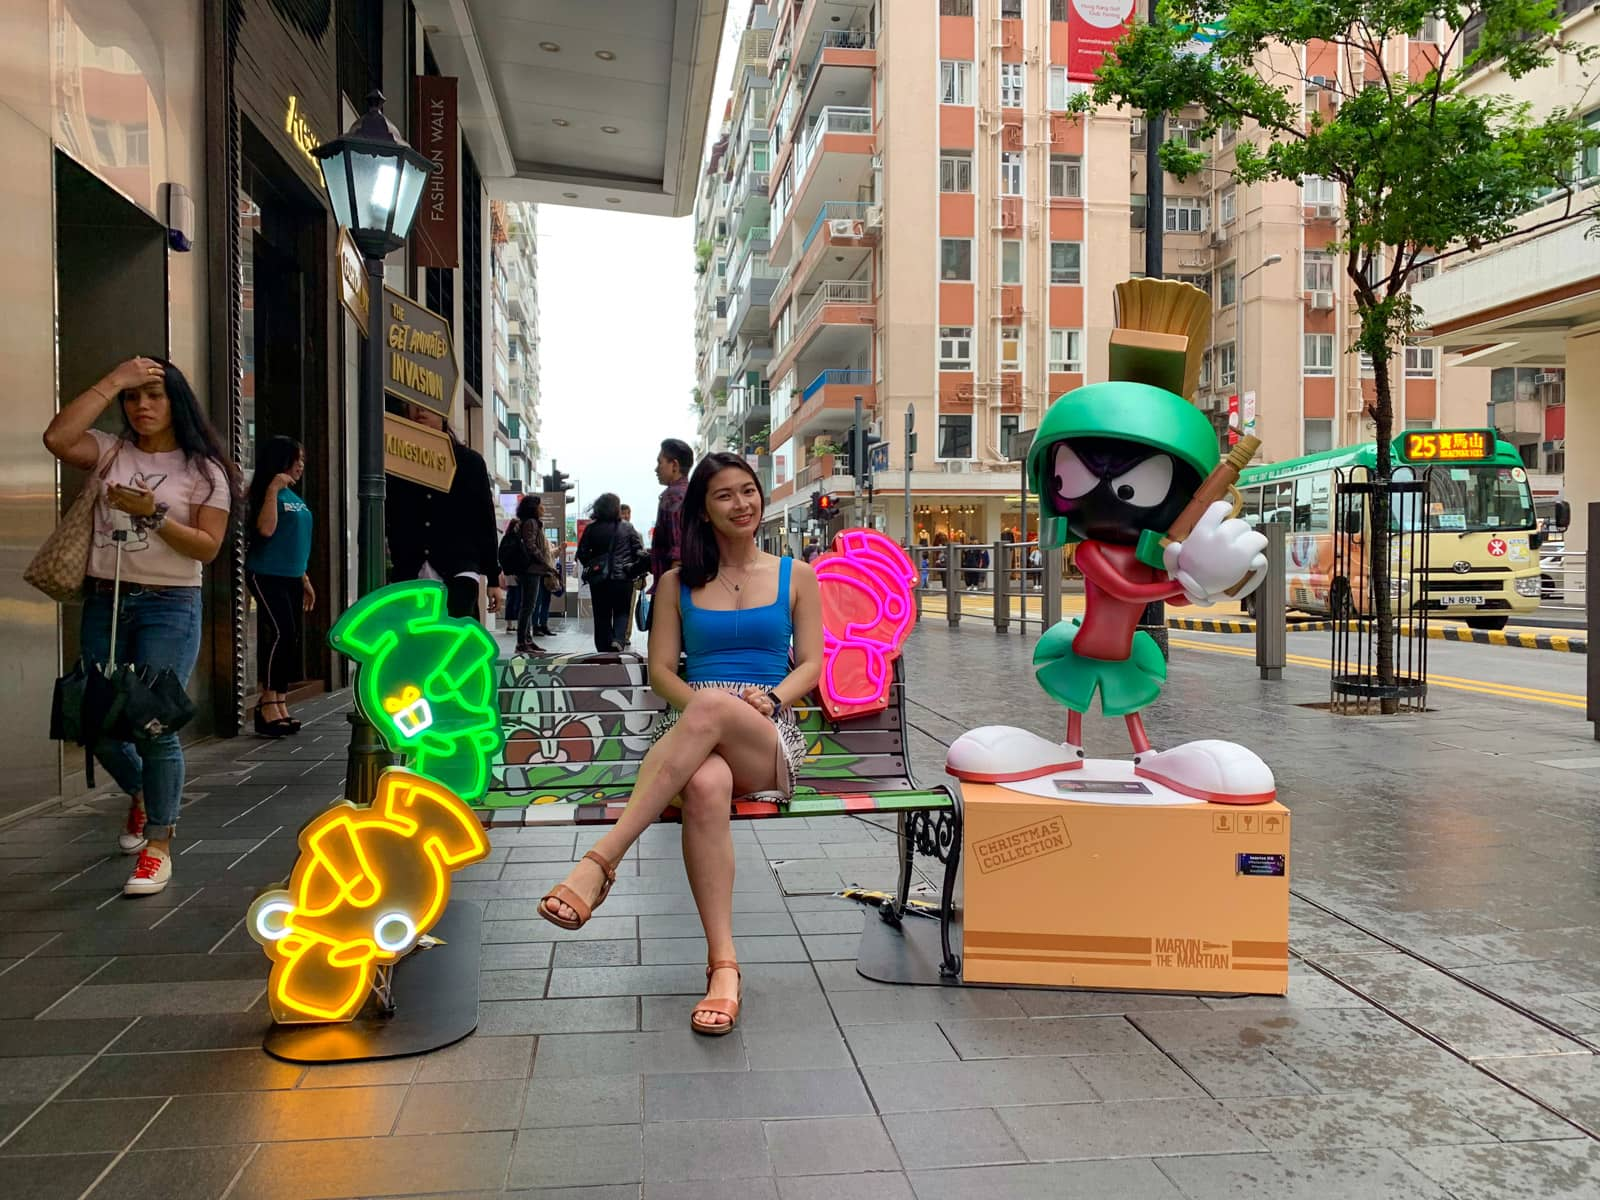 A woman sitting on a Looney Tunes stylised bench. A life size statue of the Marvin the Martian character is sitting next to the bench